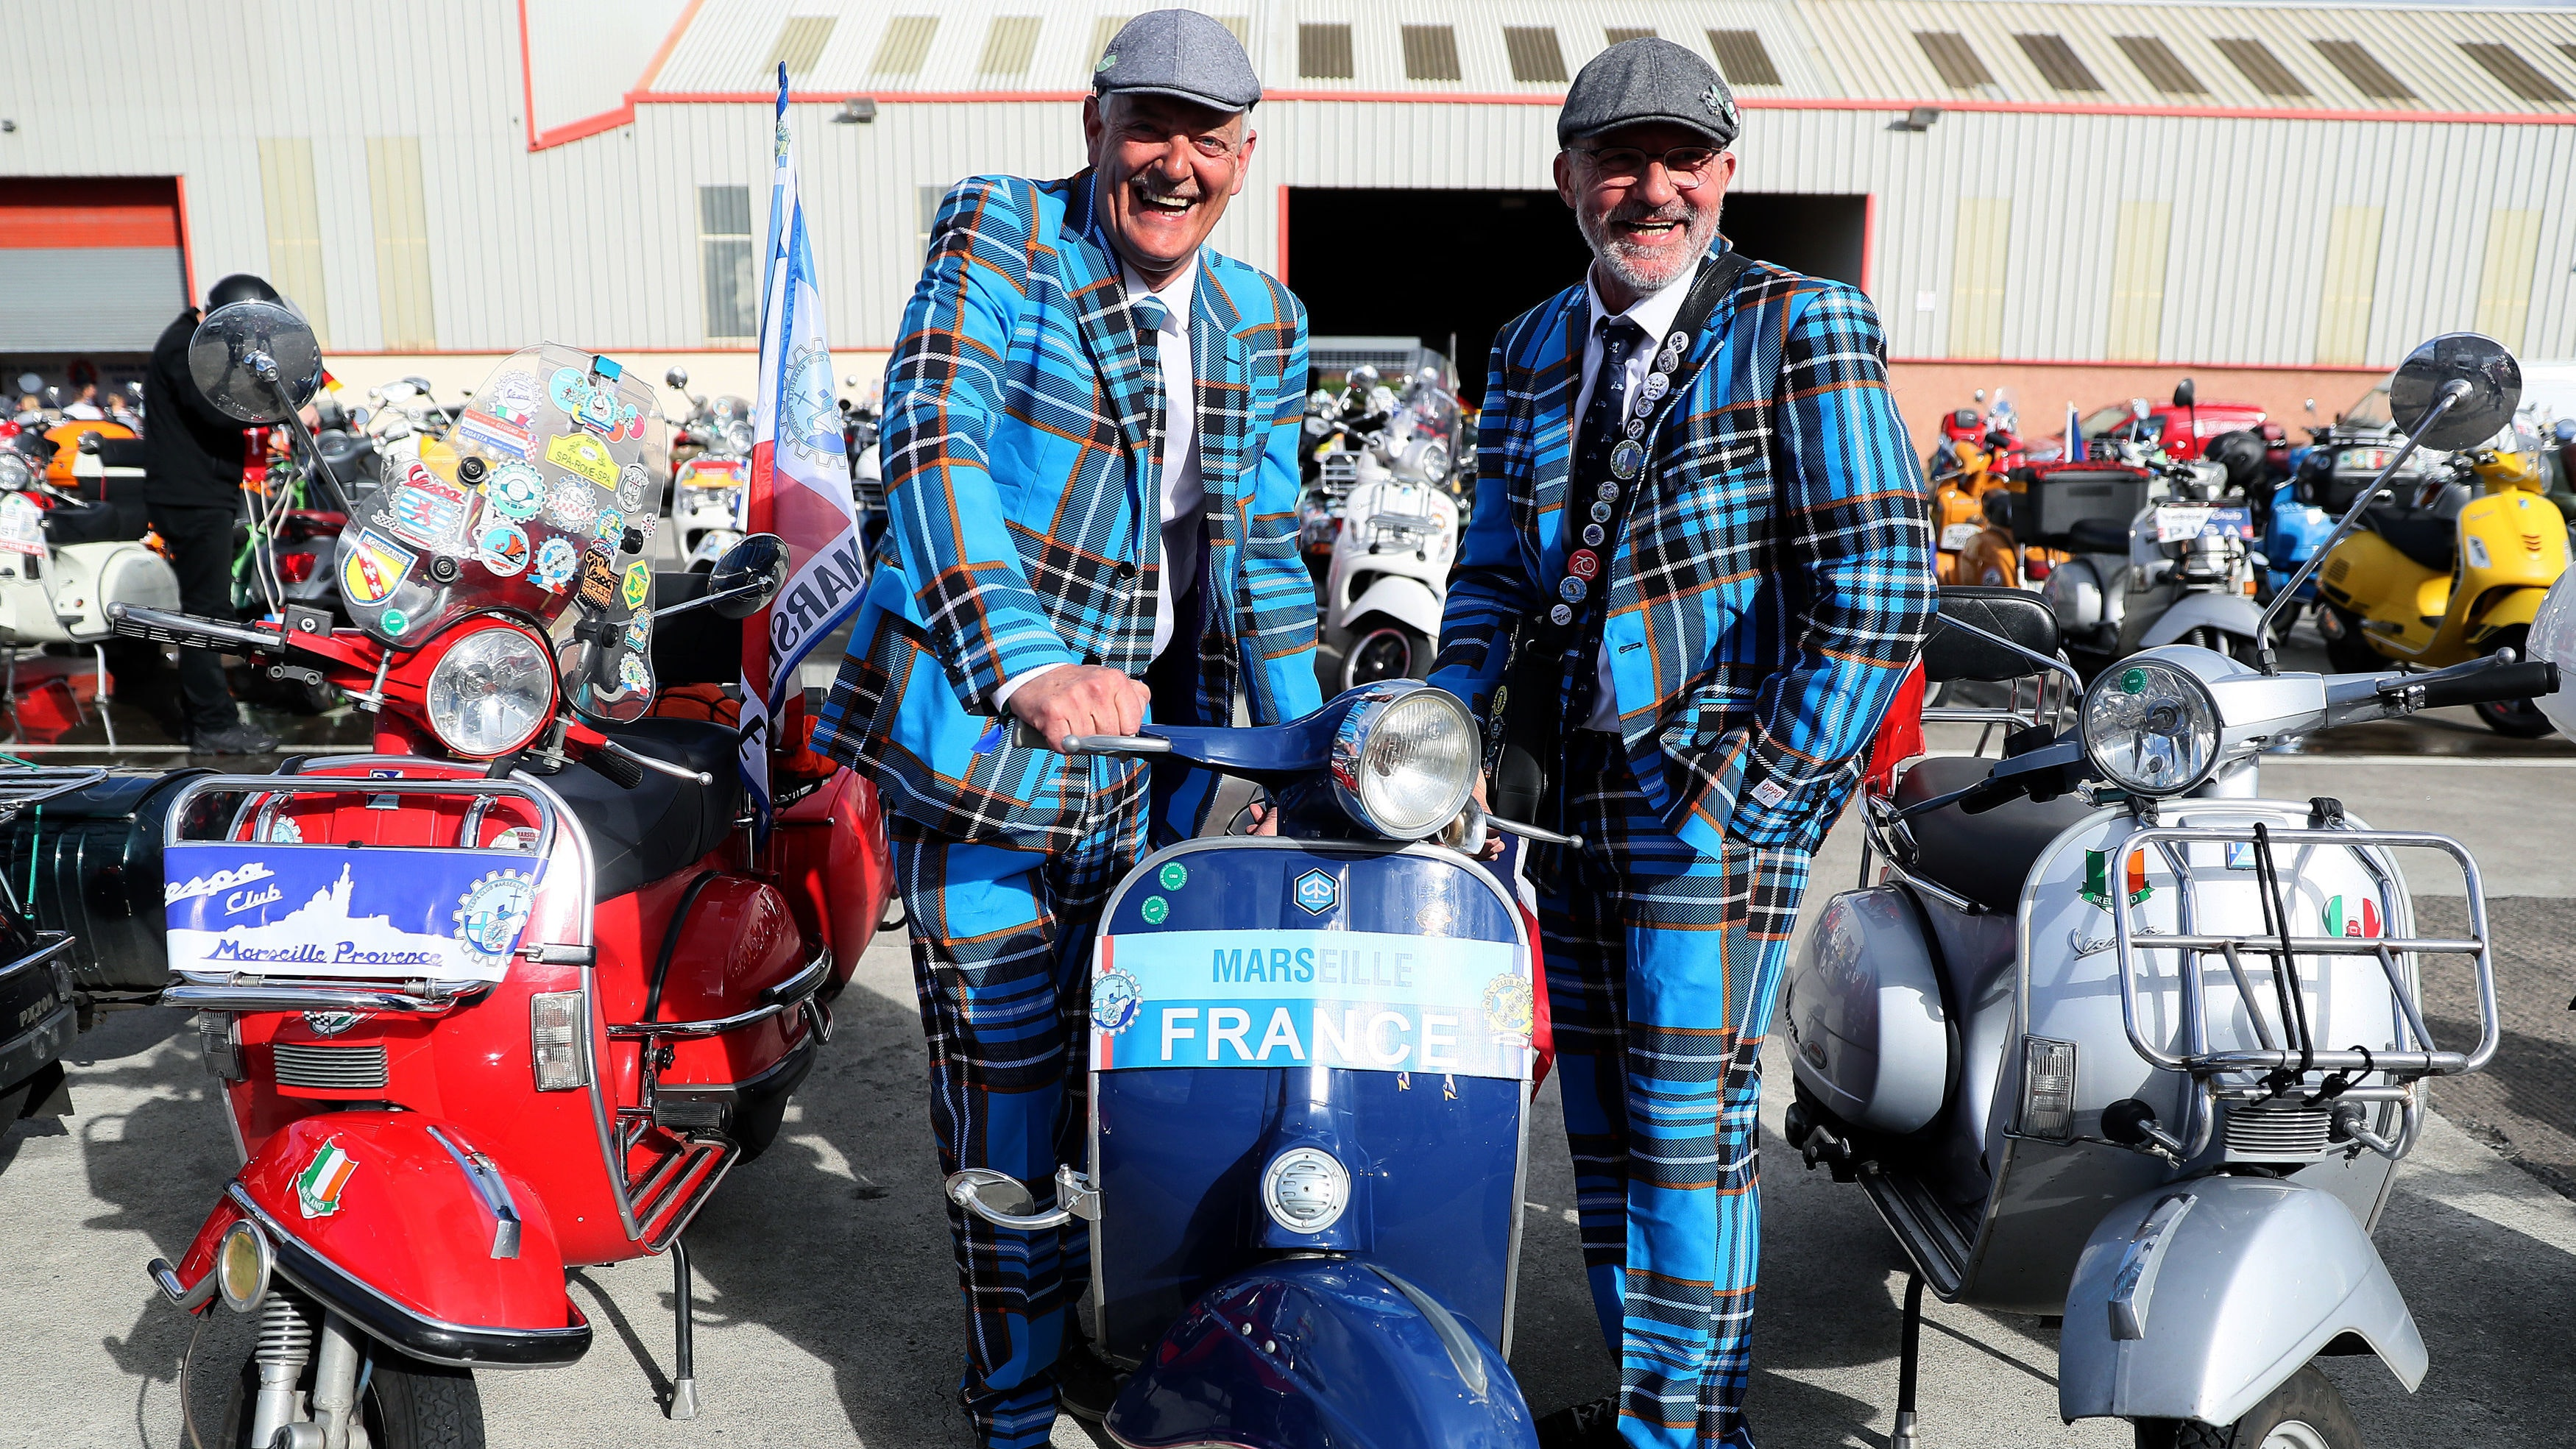 In Pictures: Thousands of Vespa enthusiasts descend on Belfast | BT